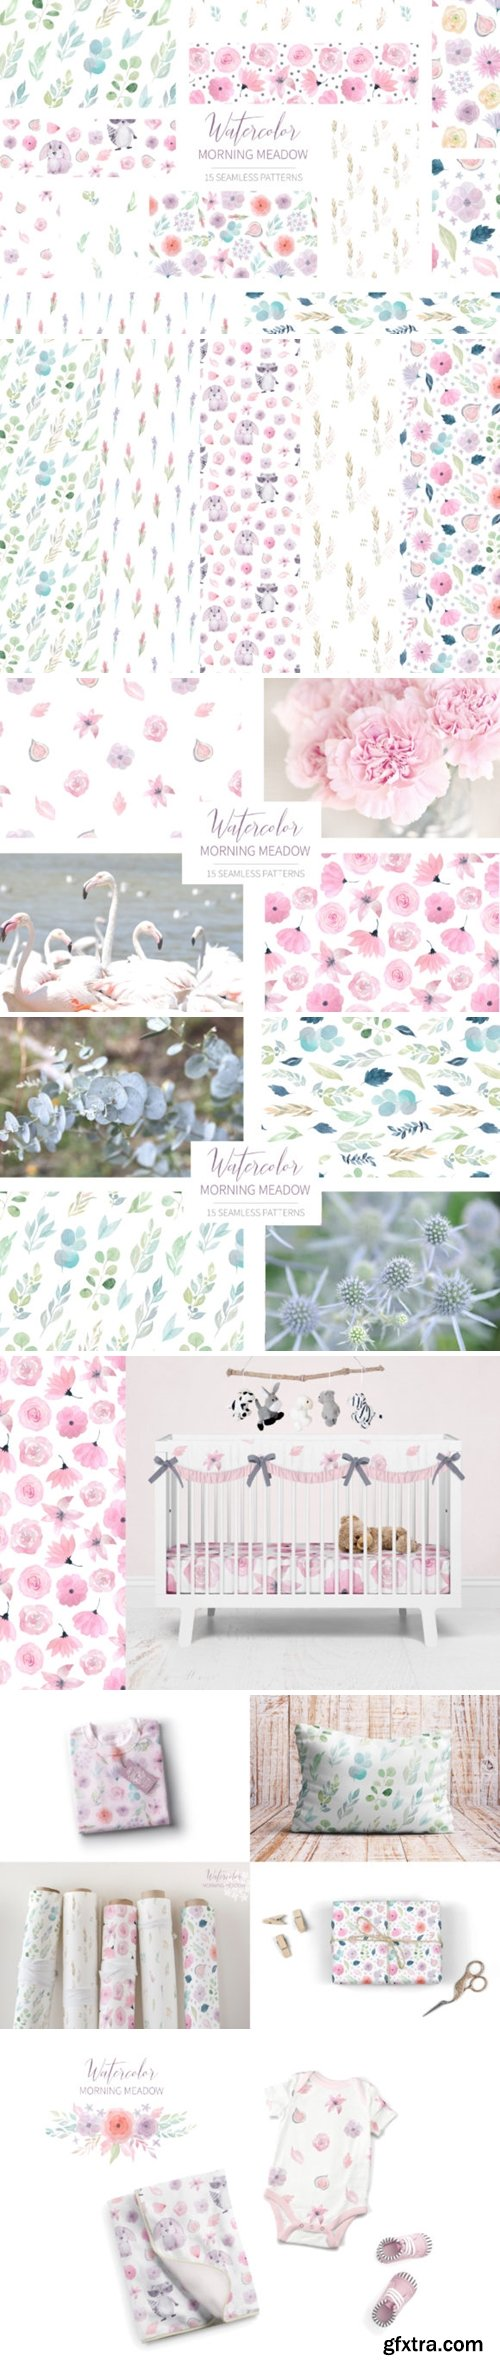 15 Morning Meadow Seamless Patterns 3515014